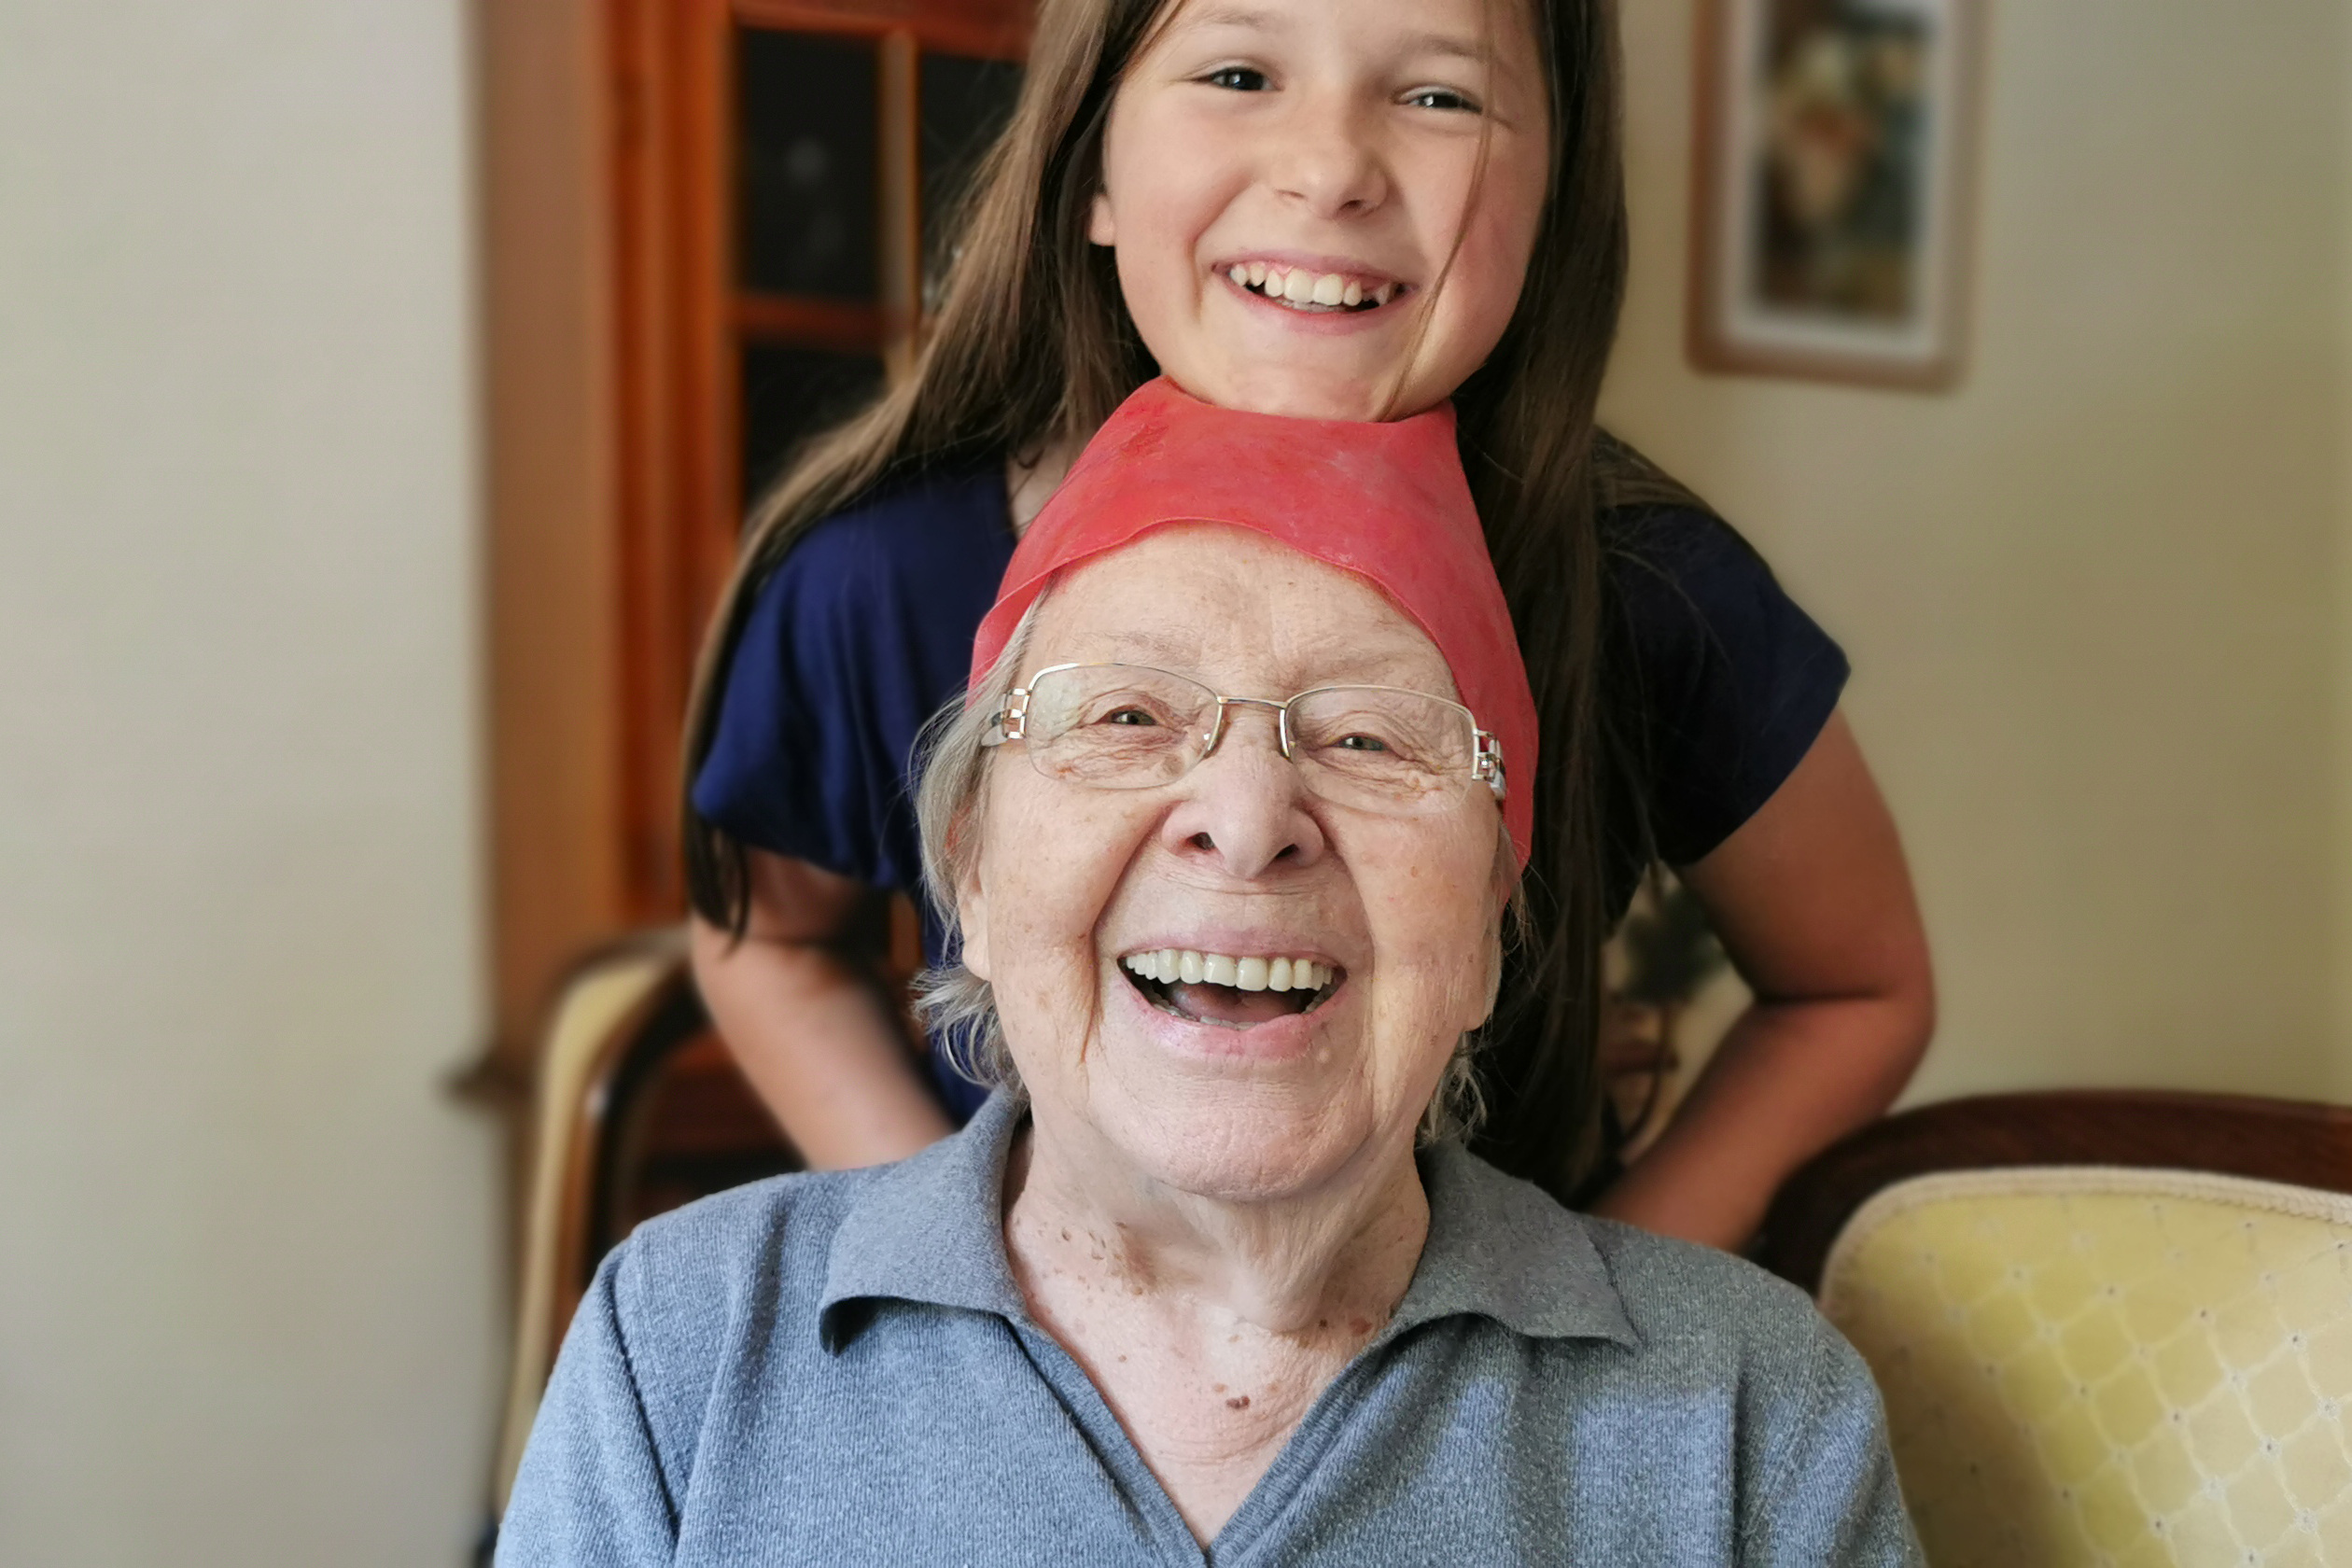 Old woman & Girl Smiling